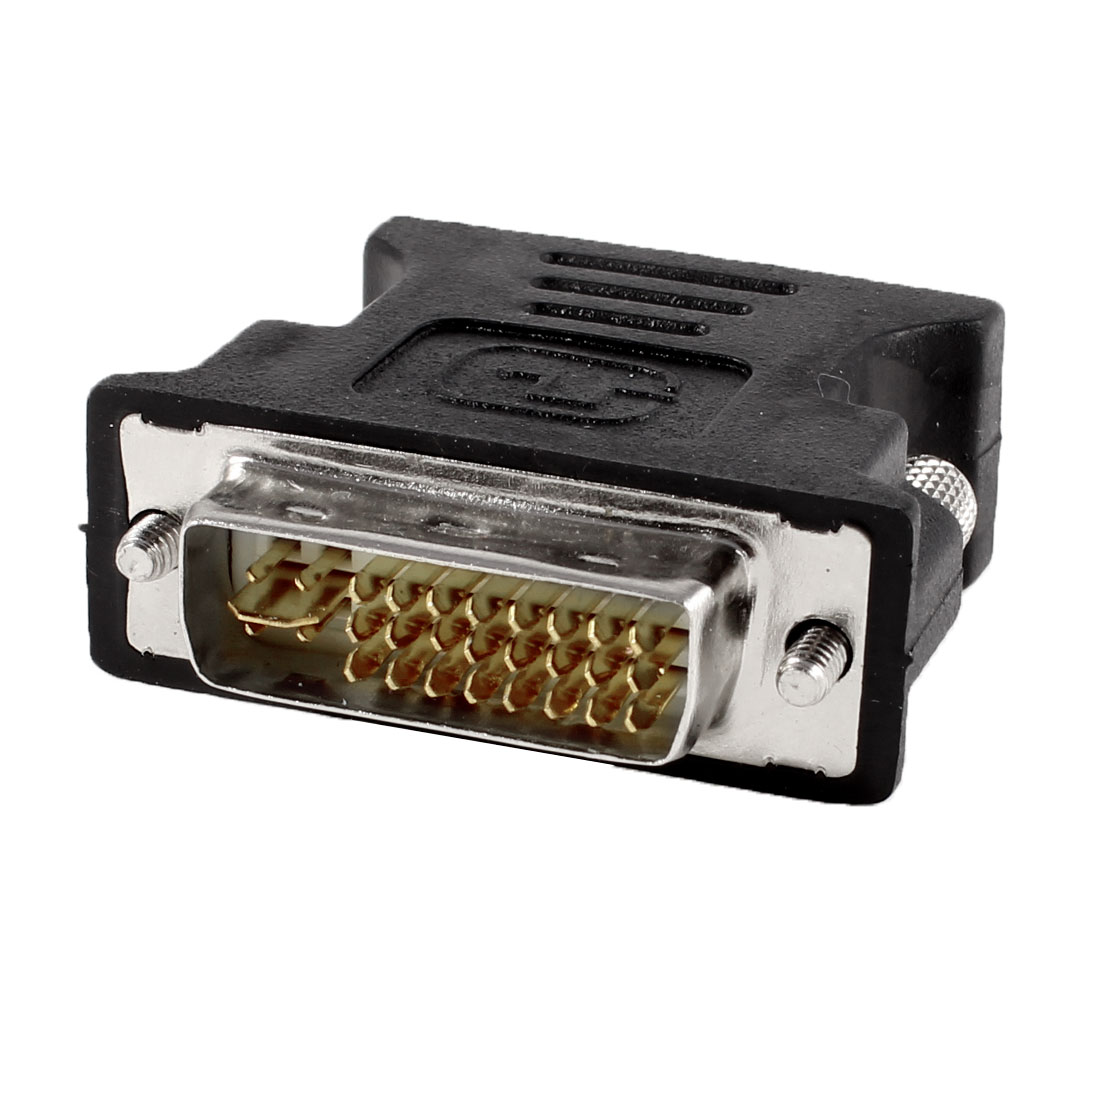 PC Computer DVI-I 24+5 Pin Male to VGA 15 Pin Female Convertor Adapter Black